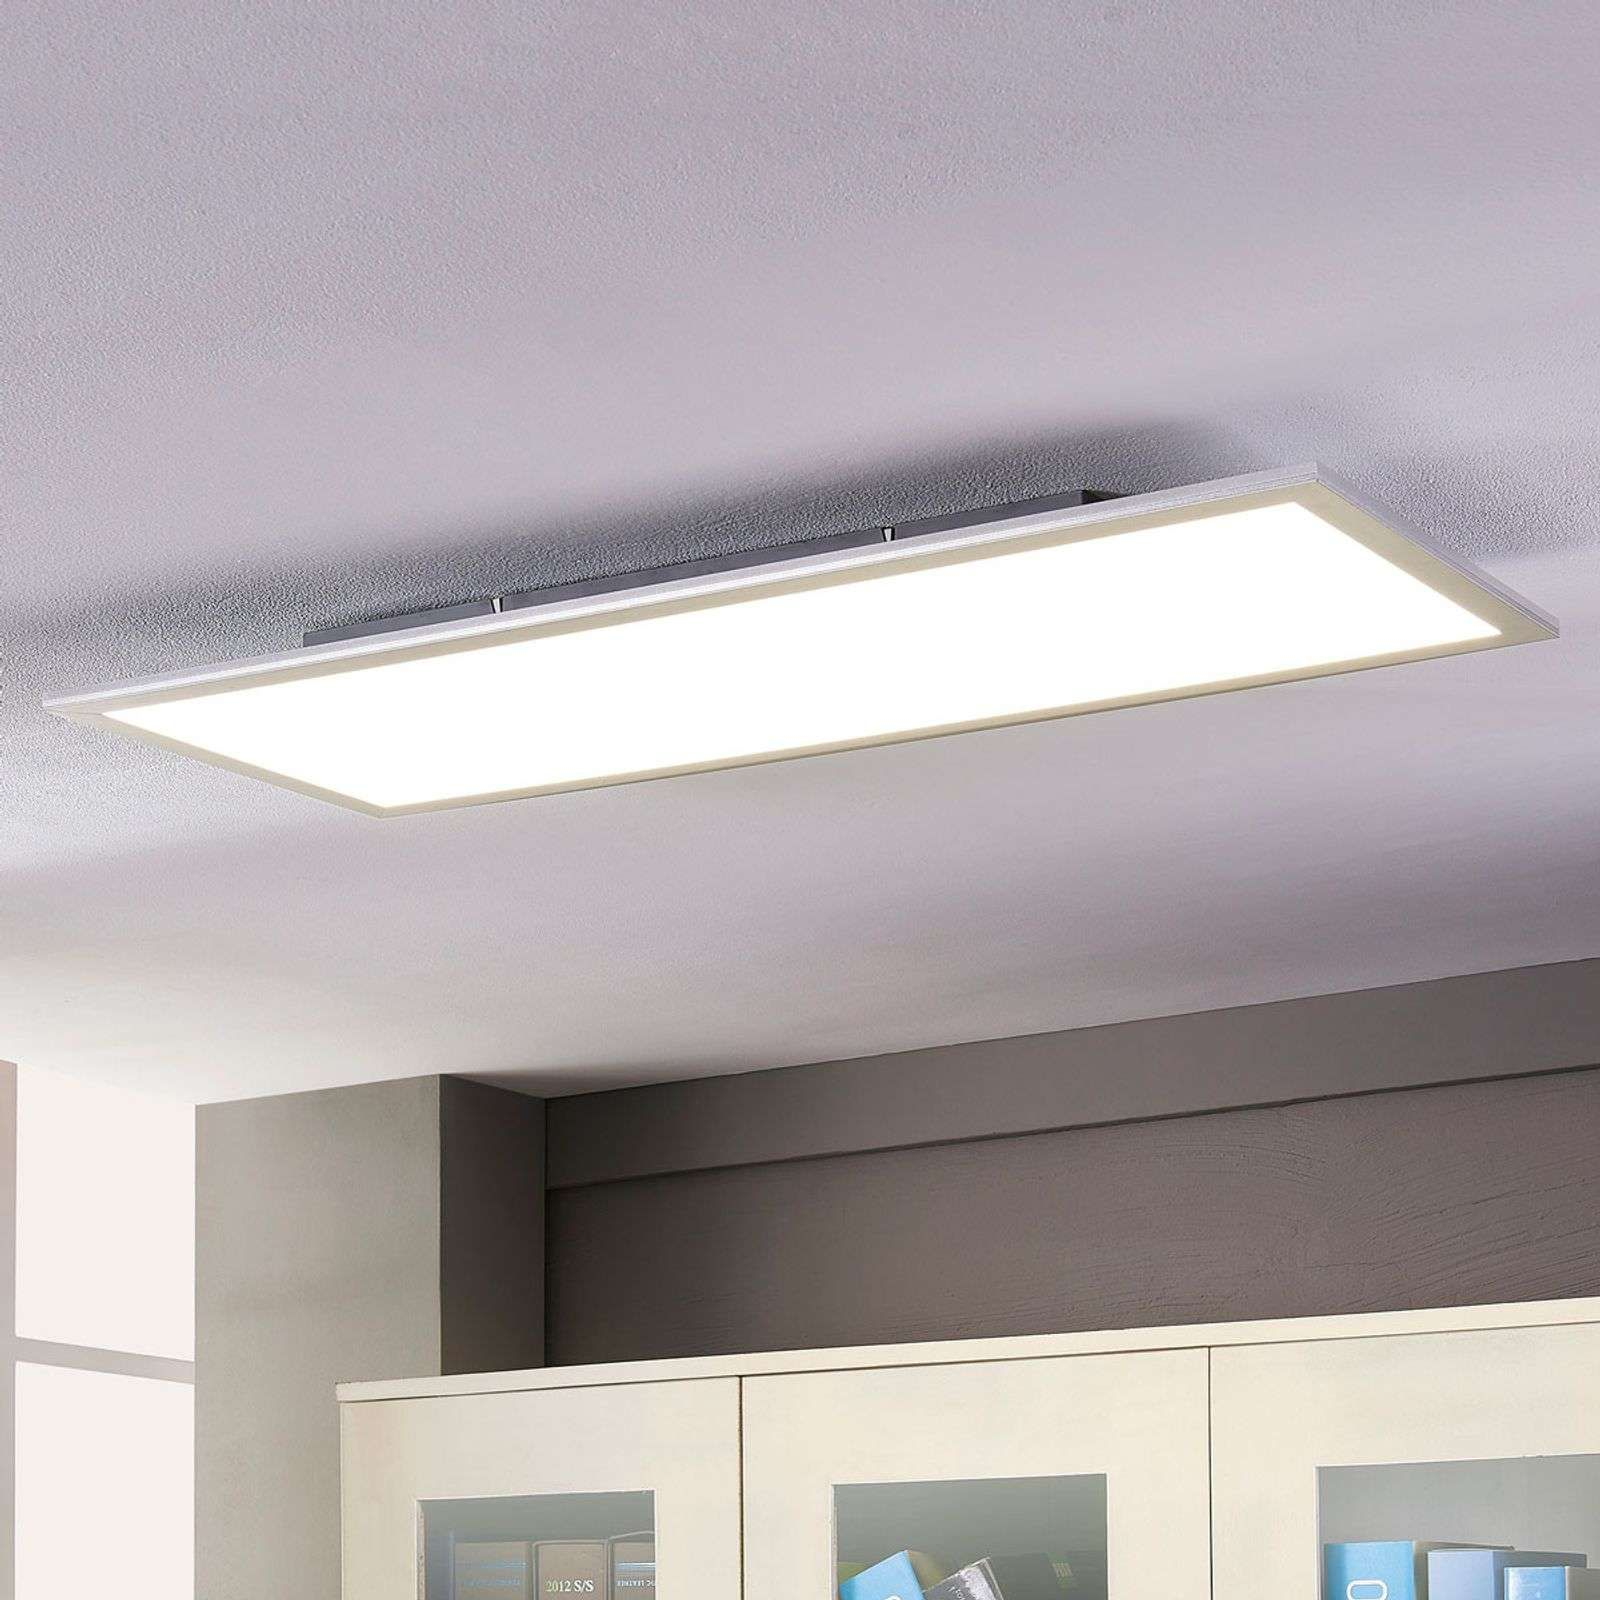 Felle Led Plafondlamp Livel Van Lampenwelt Com In 2020 Led Panel Led Ceiling Ceiling Lights